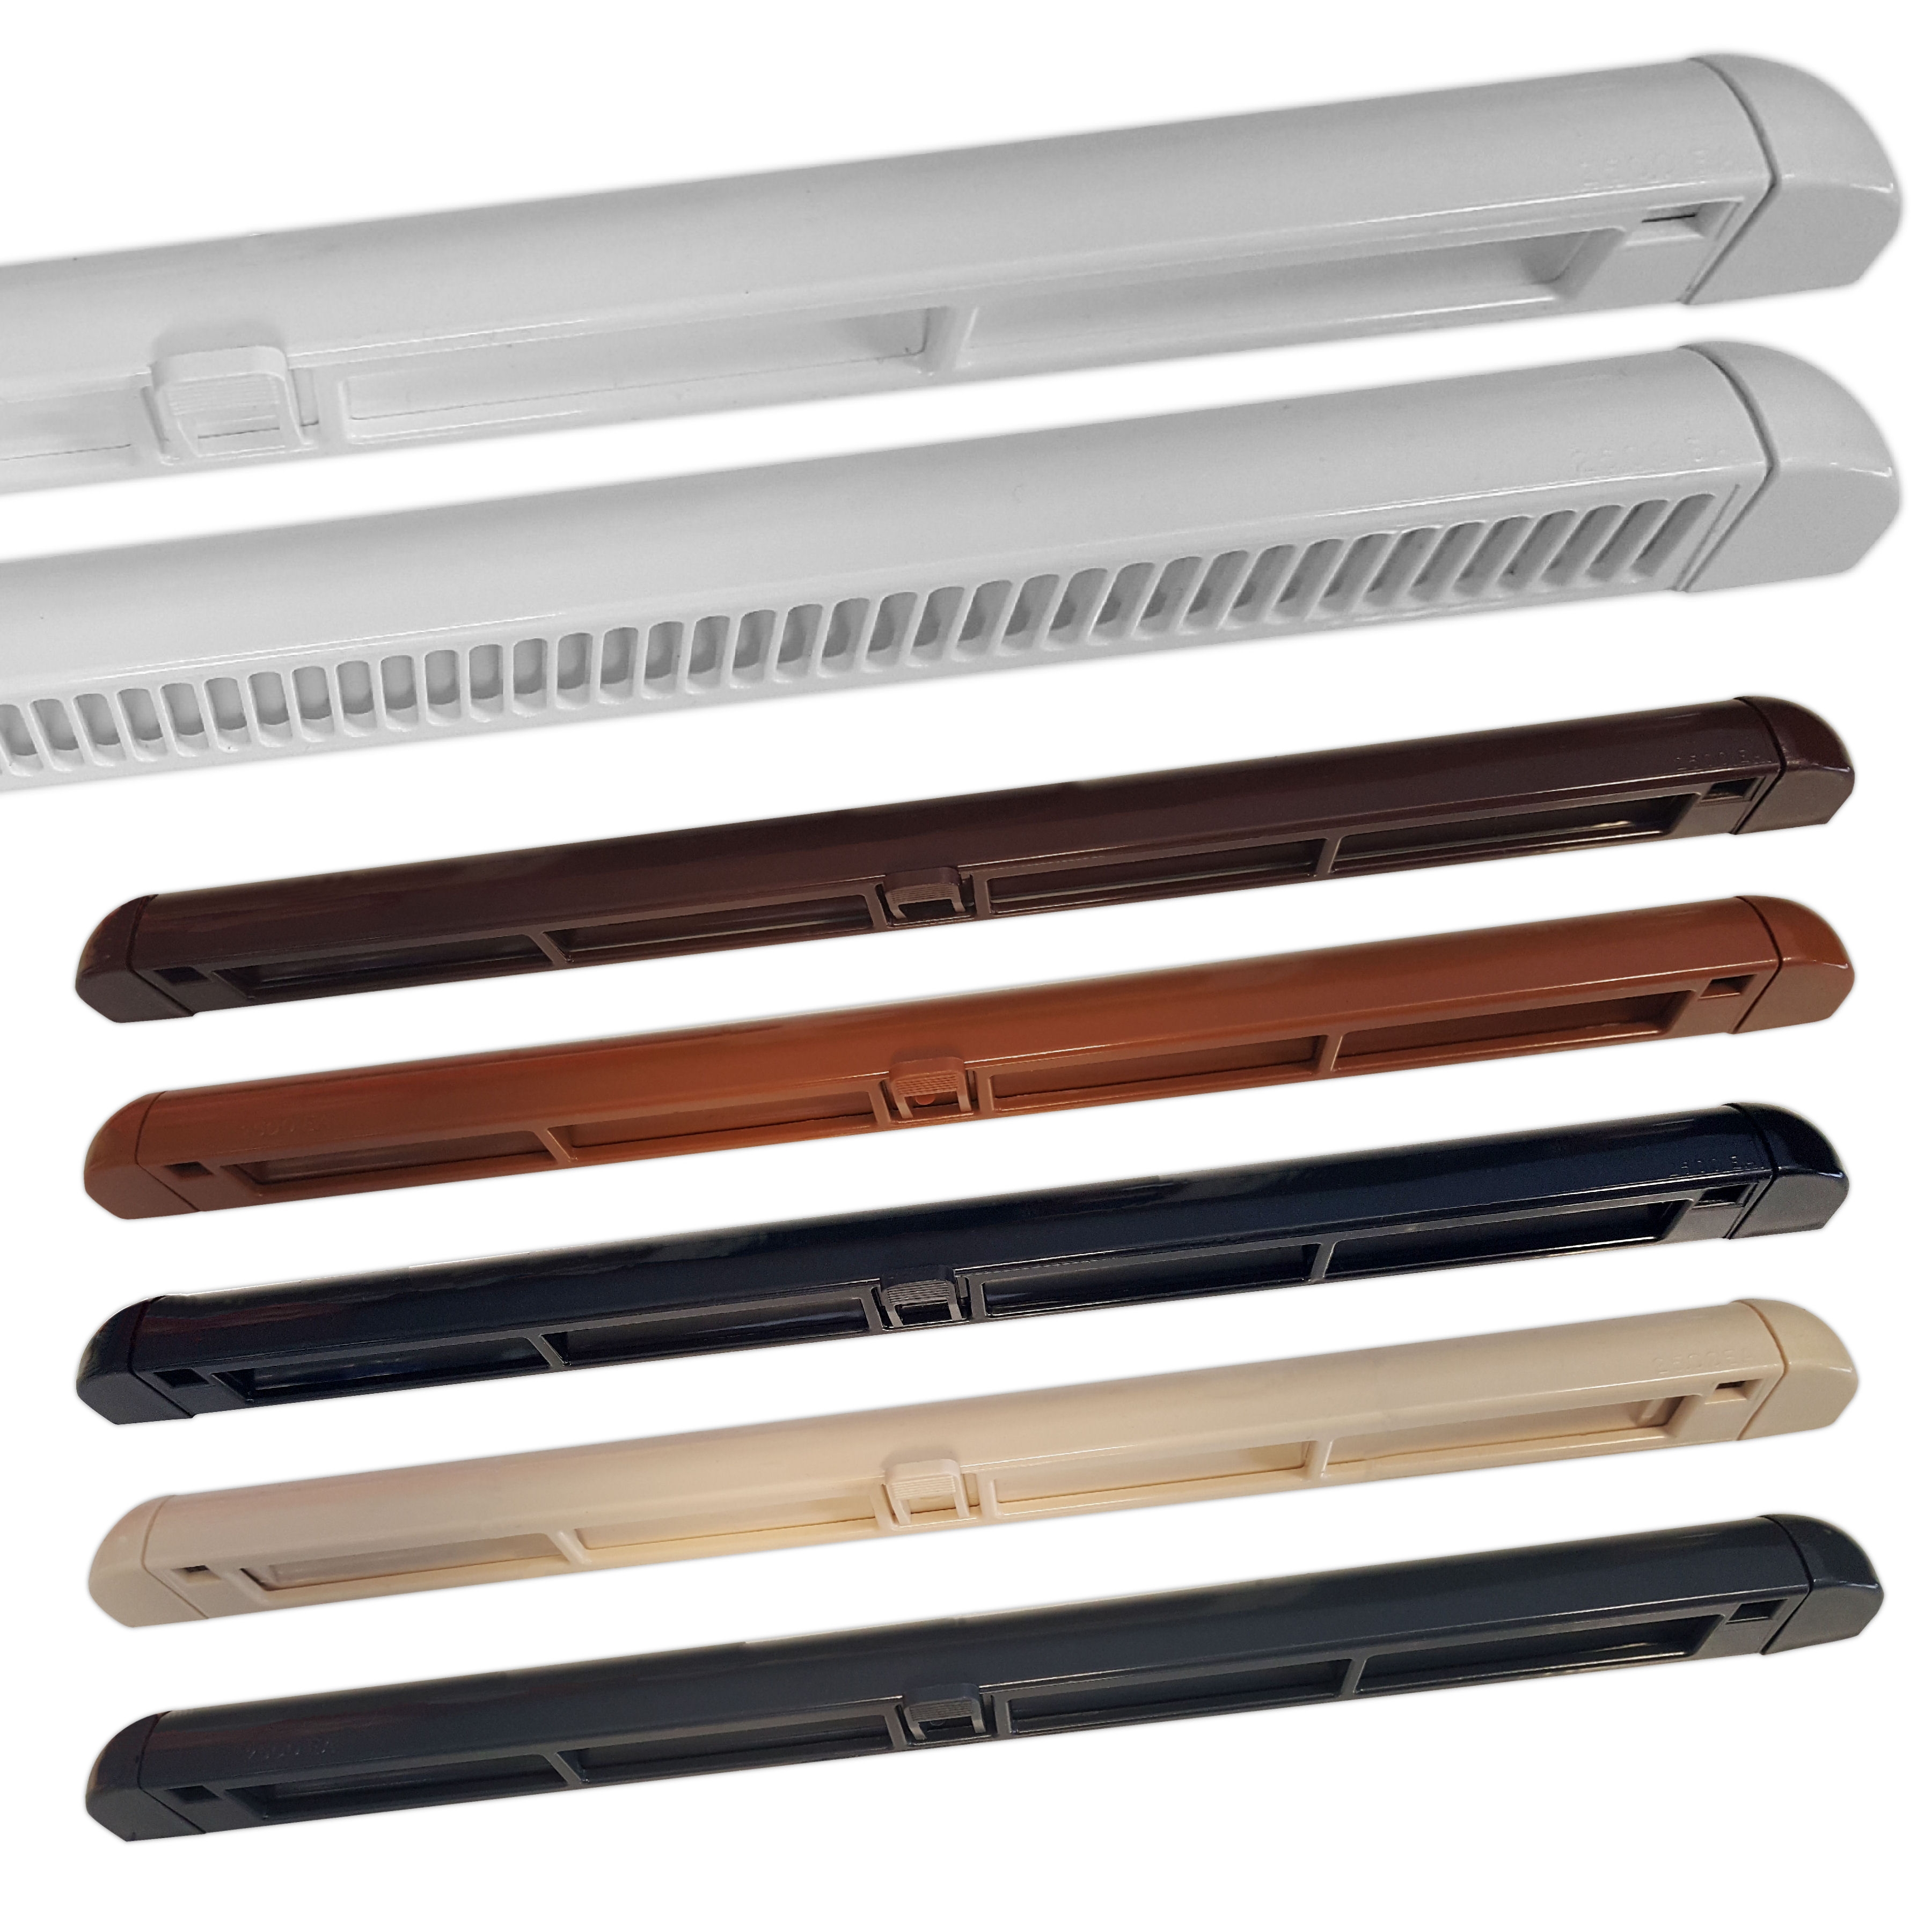 Brookvent Premium Window Trickle Slot Air Vent White Brown Black Grey for UPVC /& Timber Windows 249mm 315mm 249mm, Grey